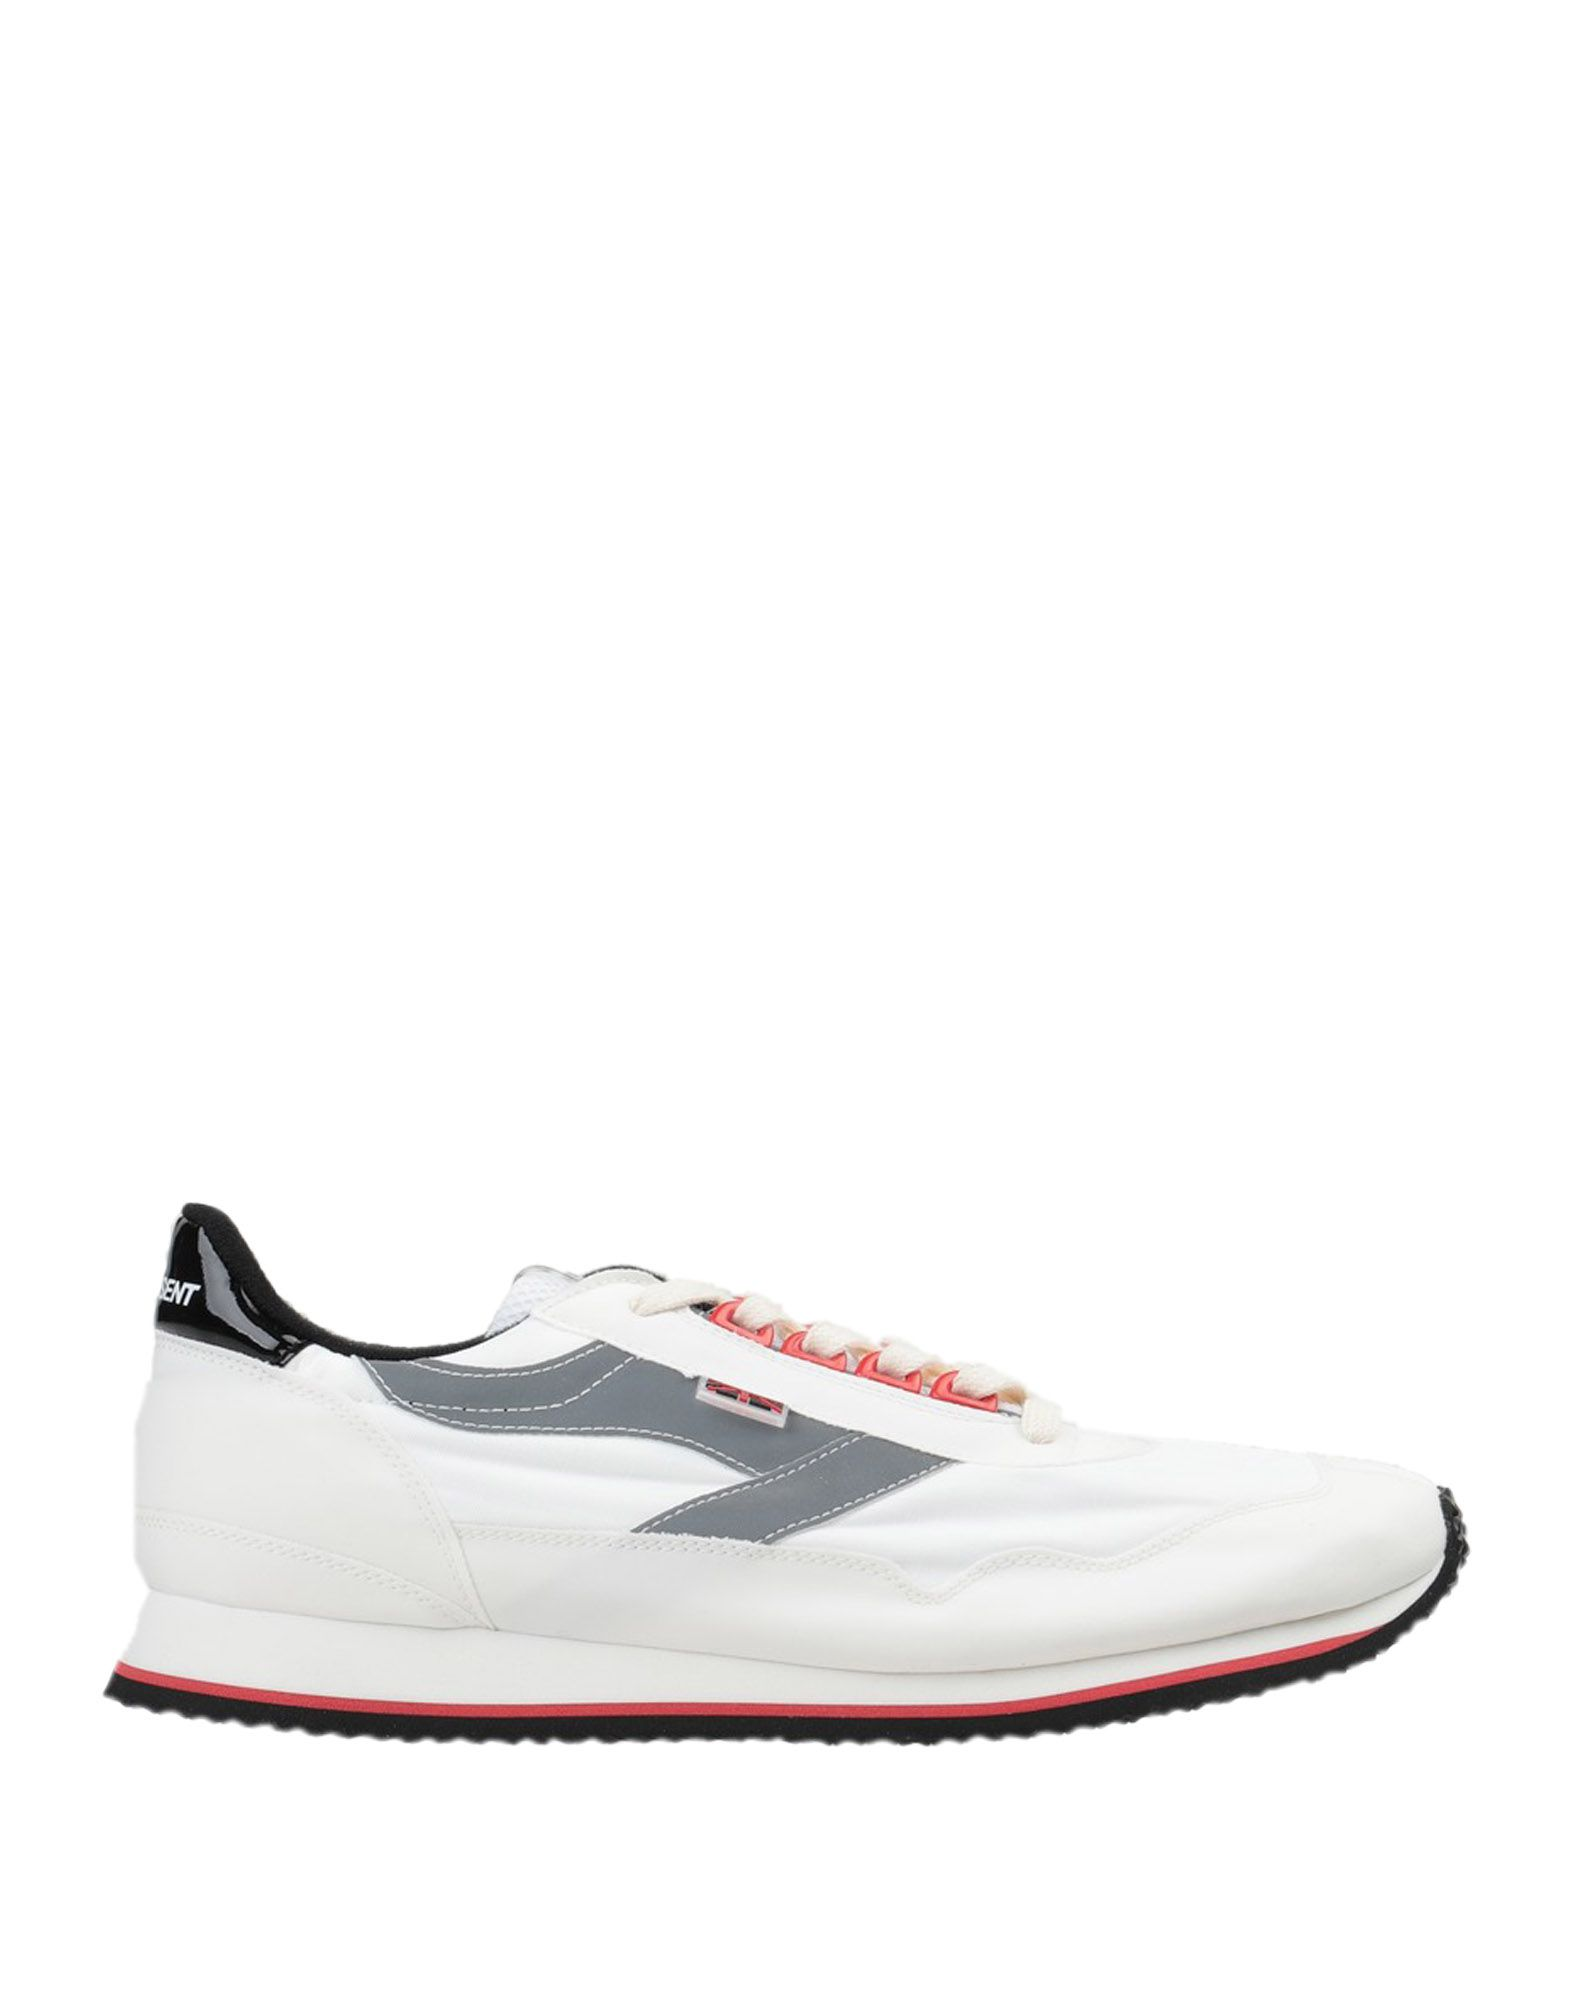 Baskets Represent Represent X Walsh Ensign - Homme - baskets Represent   - 11669823IN